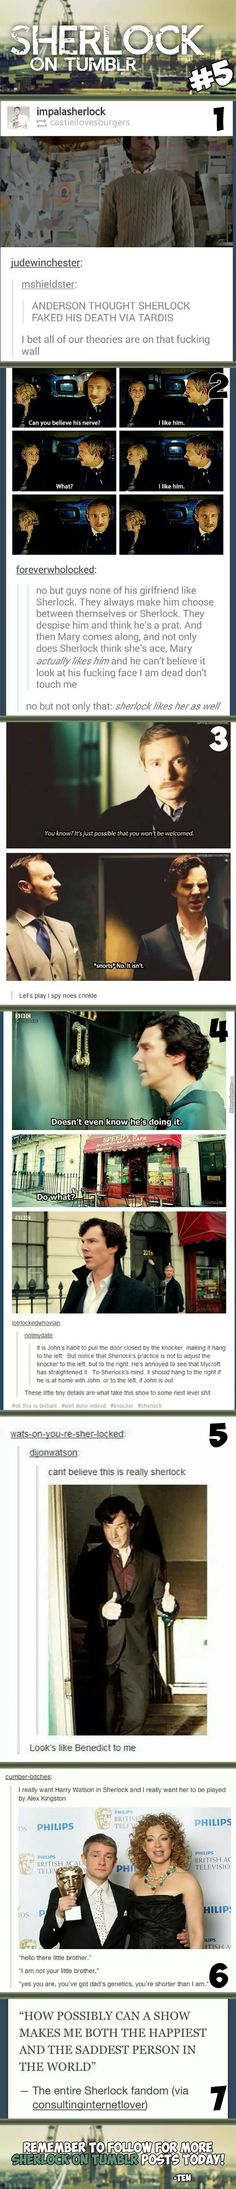 Of course Sherlock noticed the knocker, because he's Sherlock, but the fact that he actually cares......